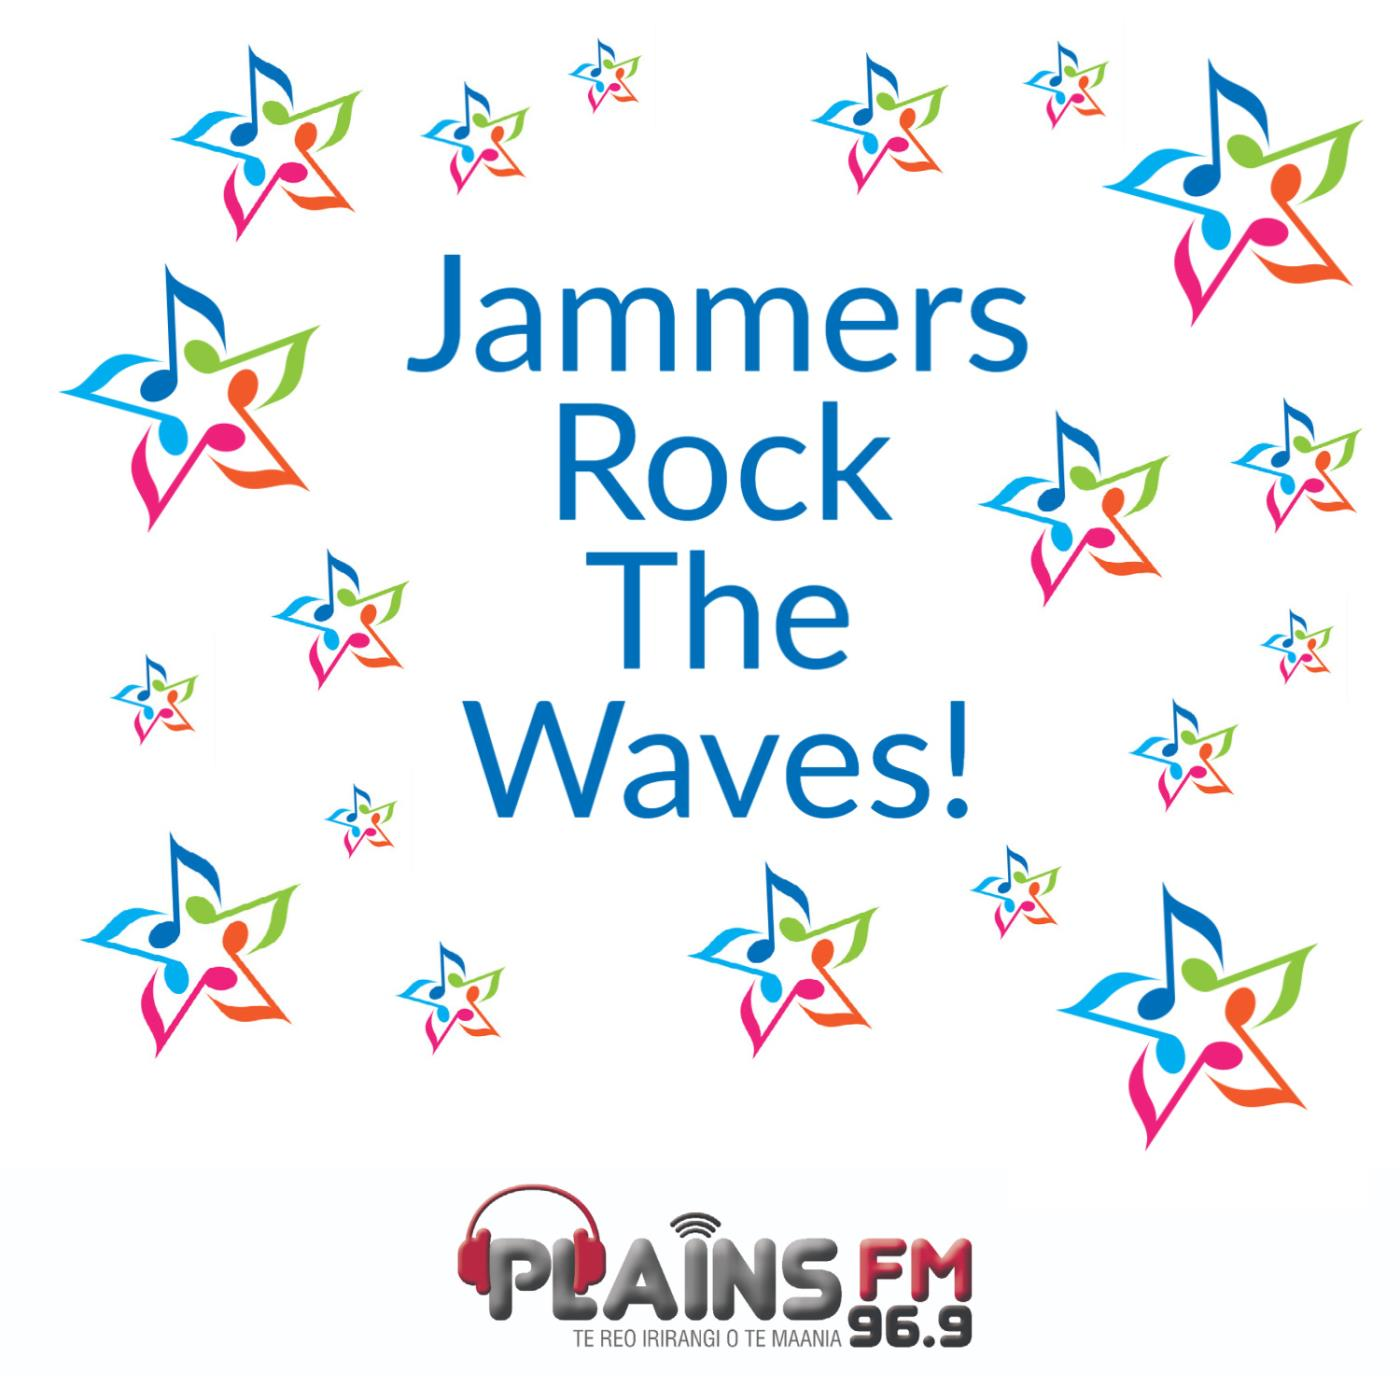 Jammers Rock the Waves